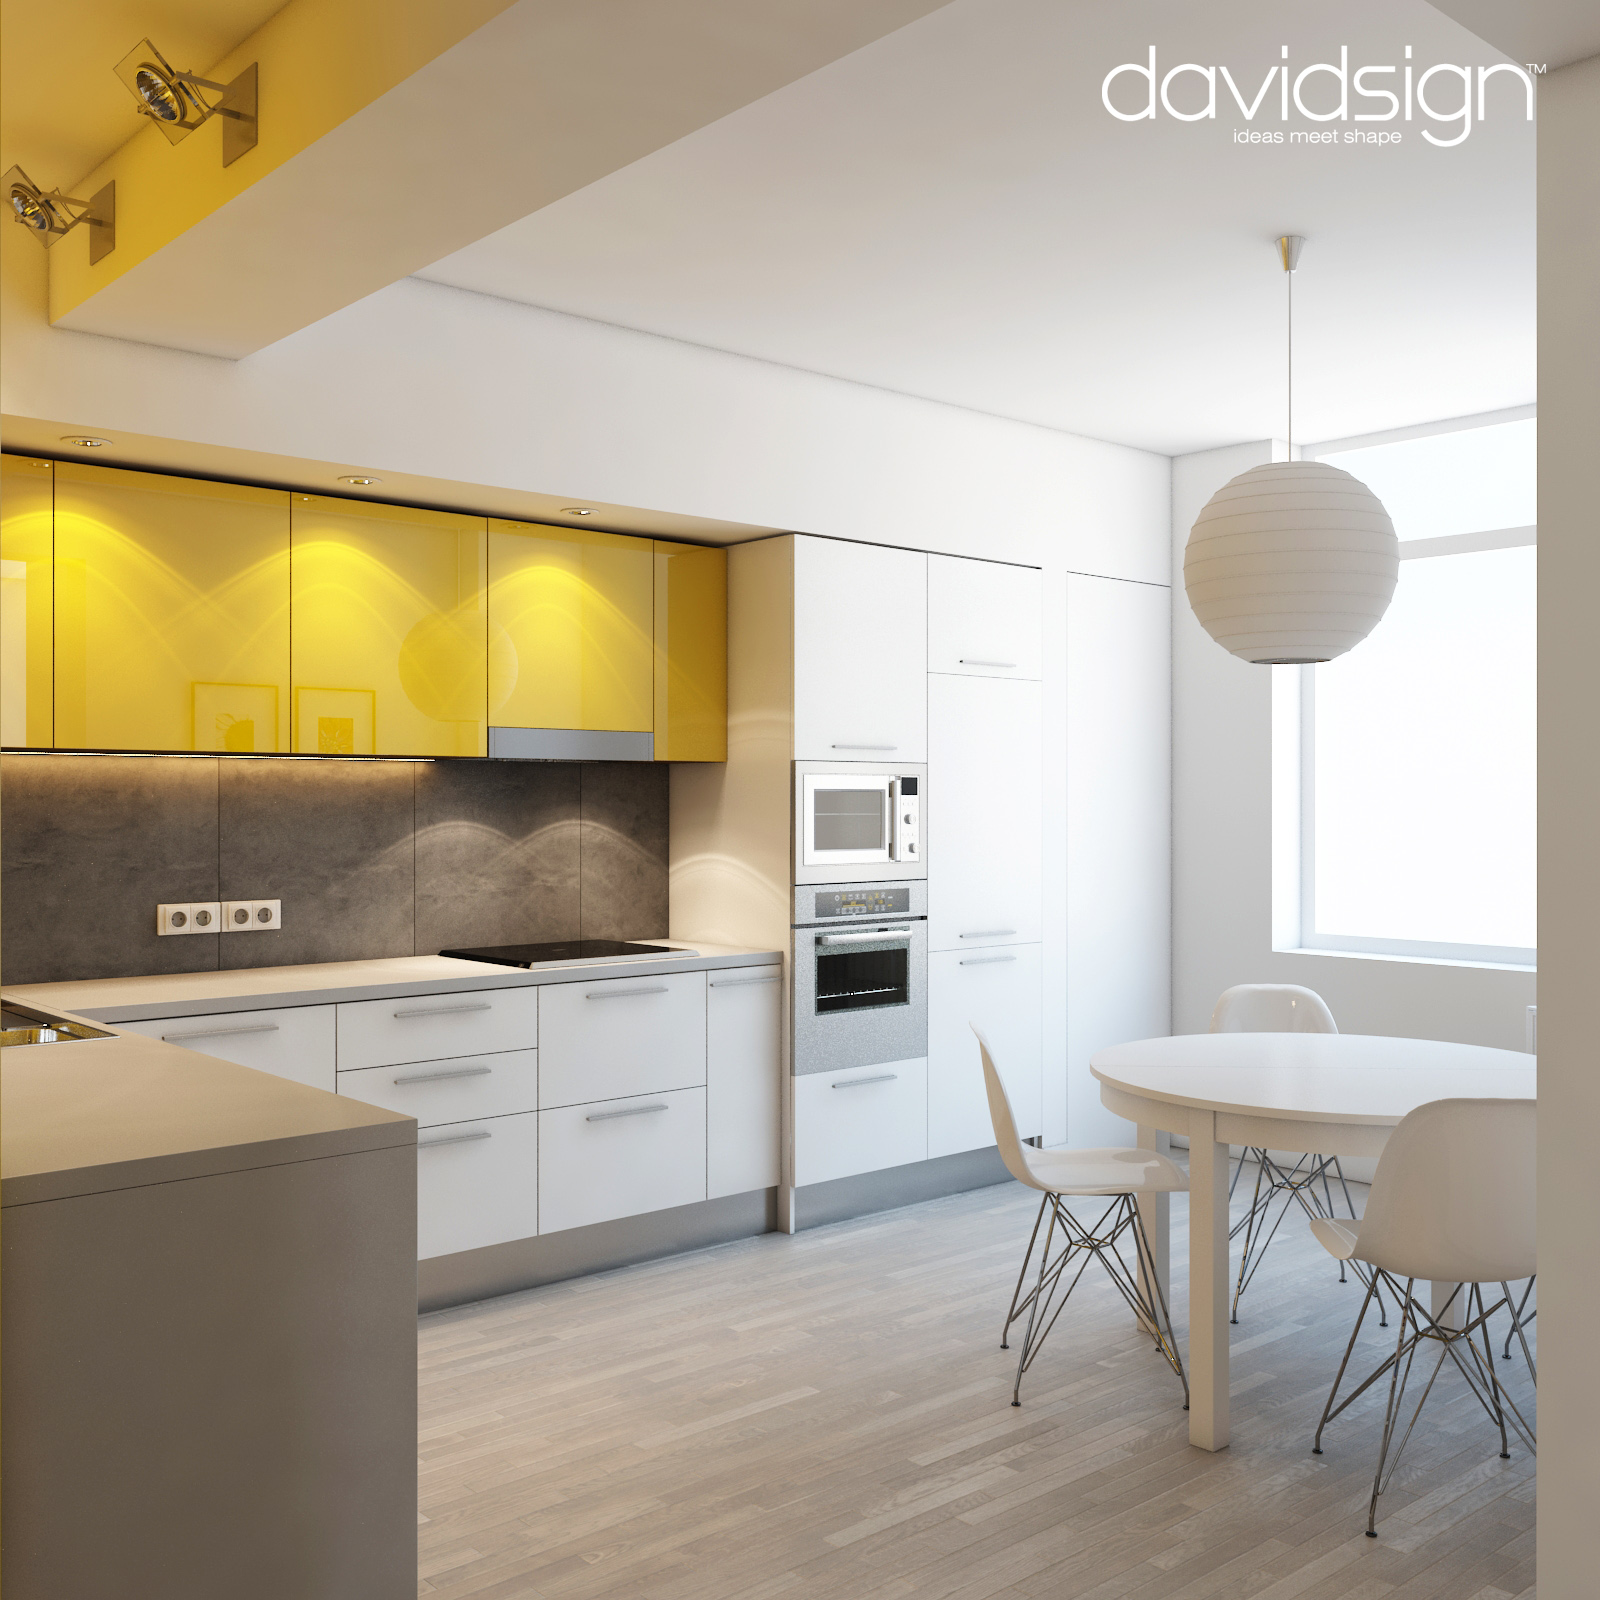 Design interior pentru apartament n chi in u davidsign blog for Be interior design